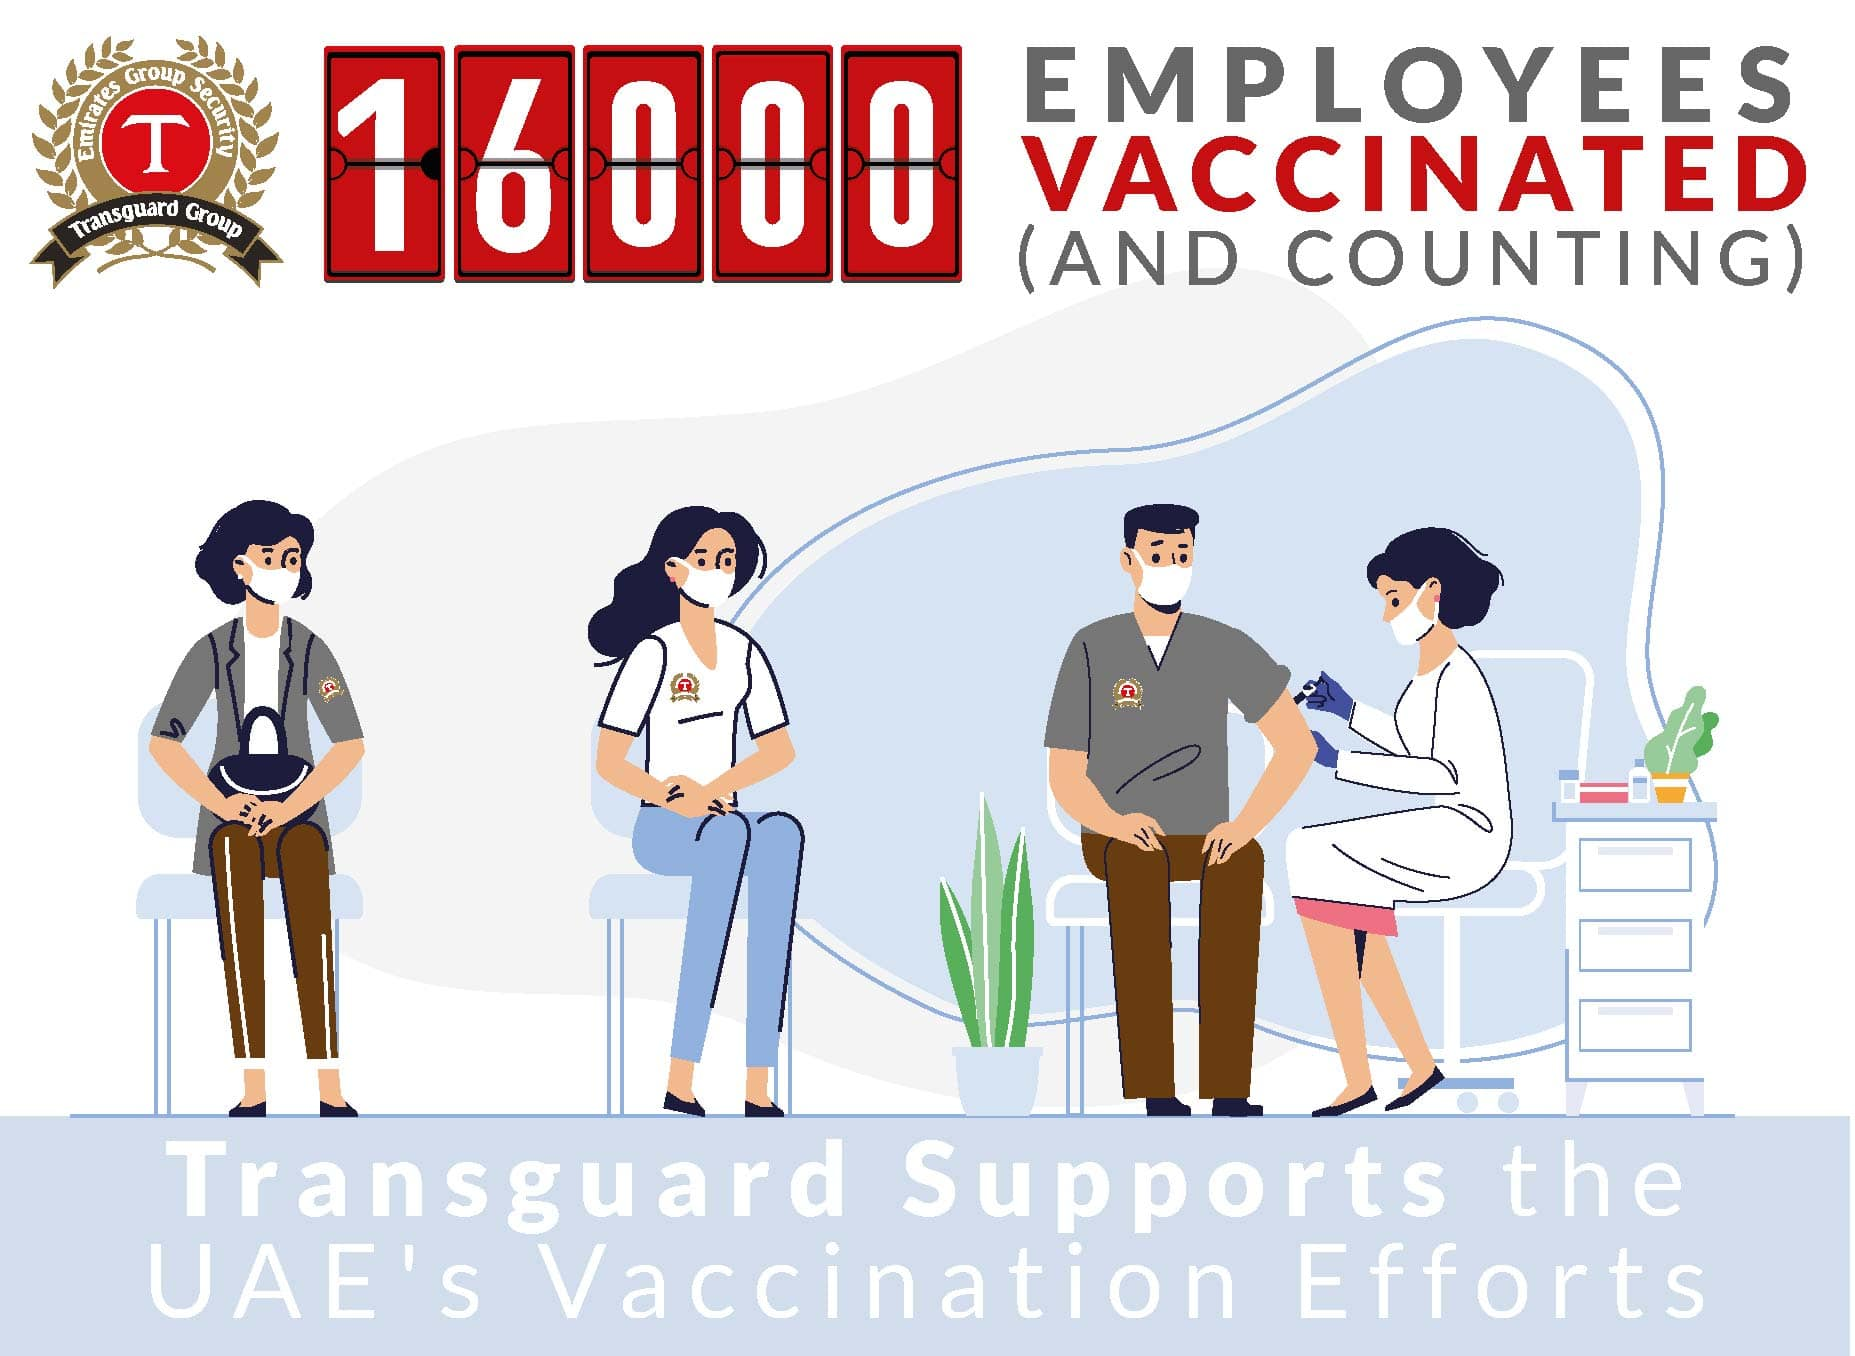 Transguard Group Vaccinates 16,000 Employees